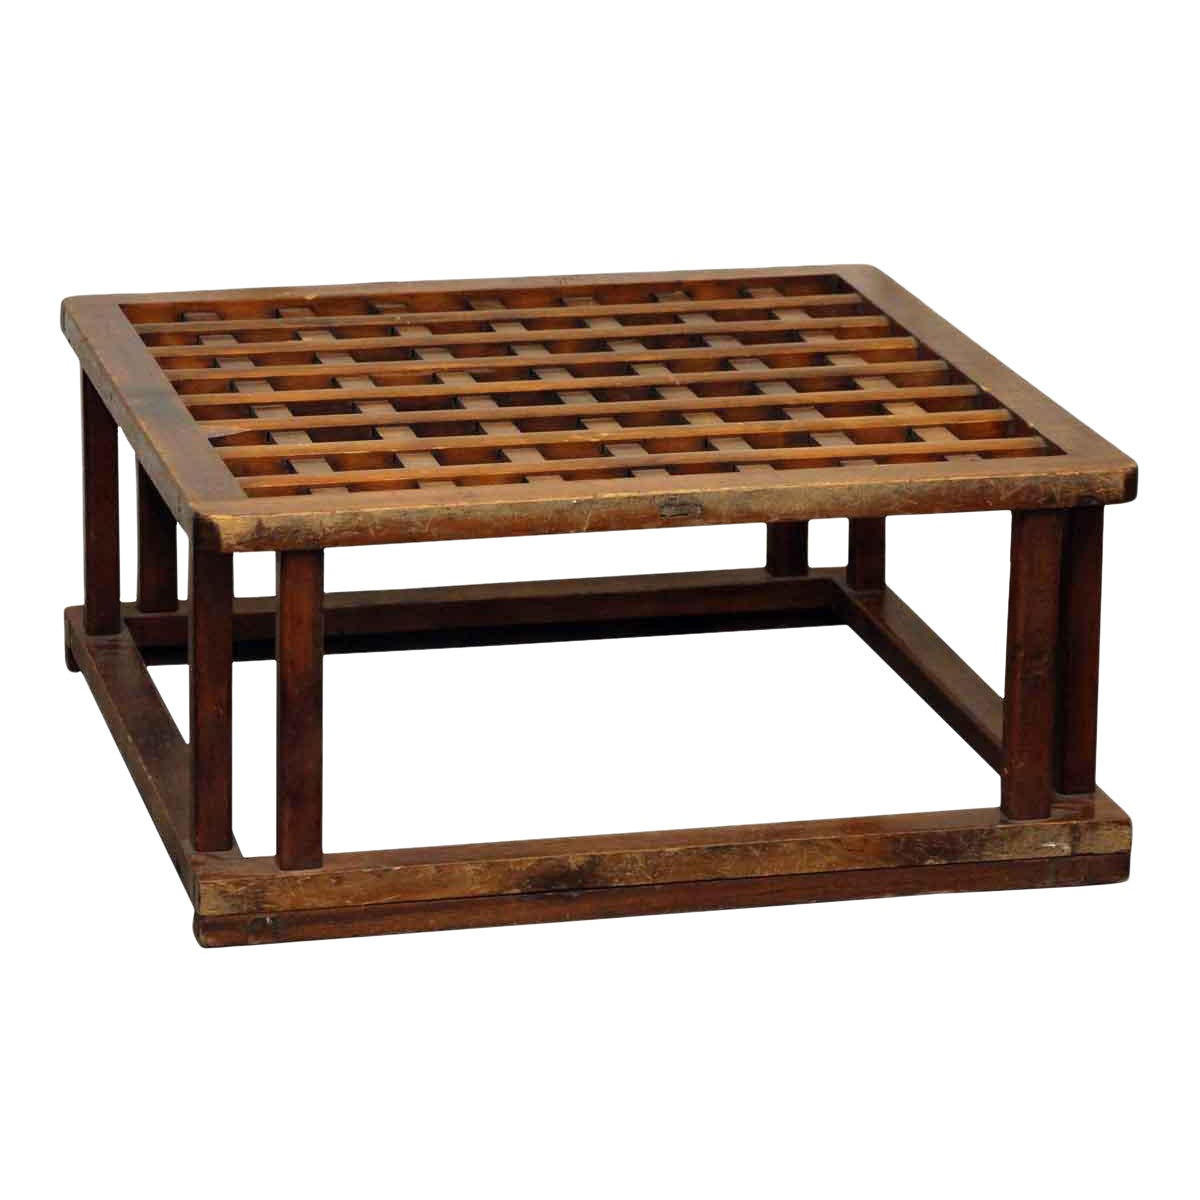 Square Wooden Coffee Table Base Chairish